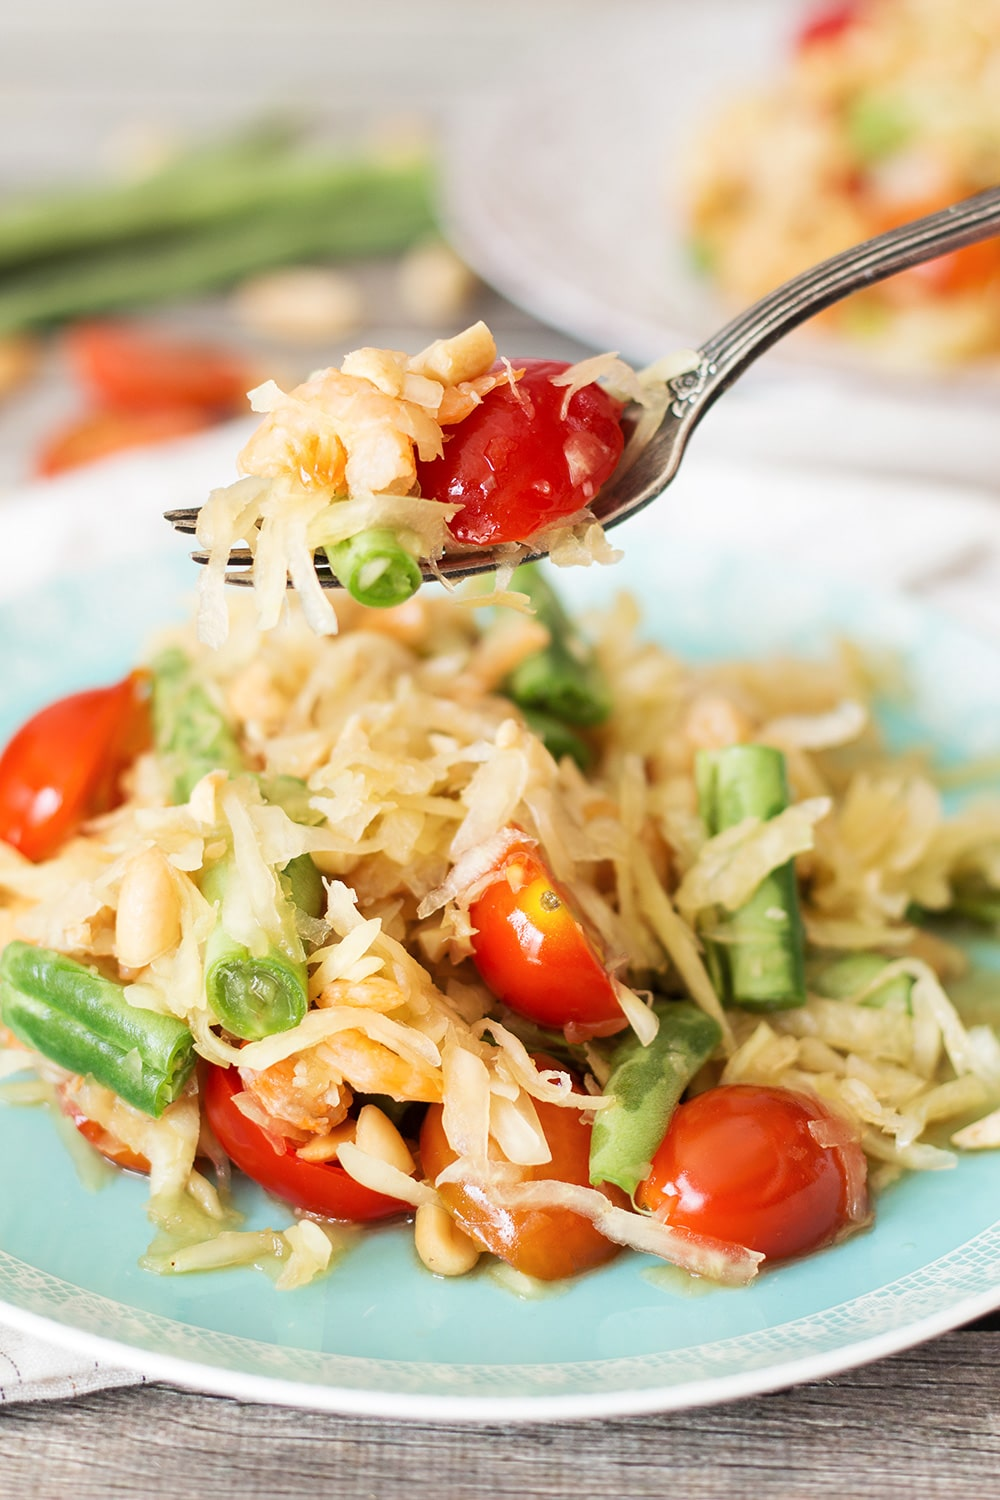 This Thai Green Papaya Salad, also known as Som Tum or Som Tam, combines a wide range of unique flavors making it unique and crazy delicious! | cookingtheglobe.com